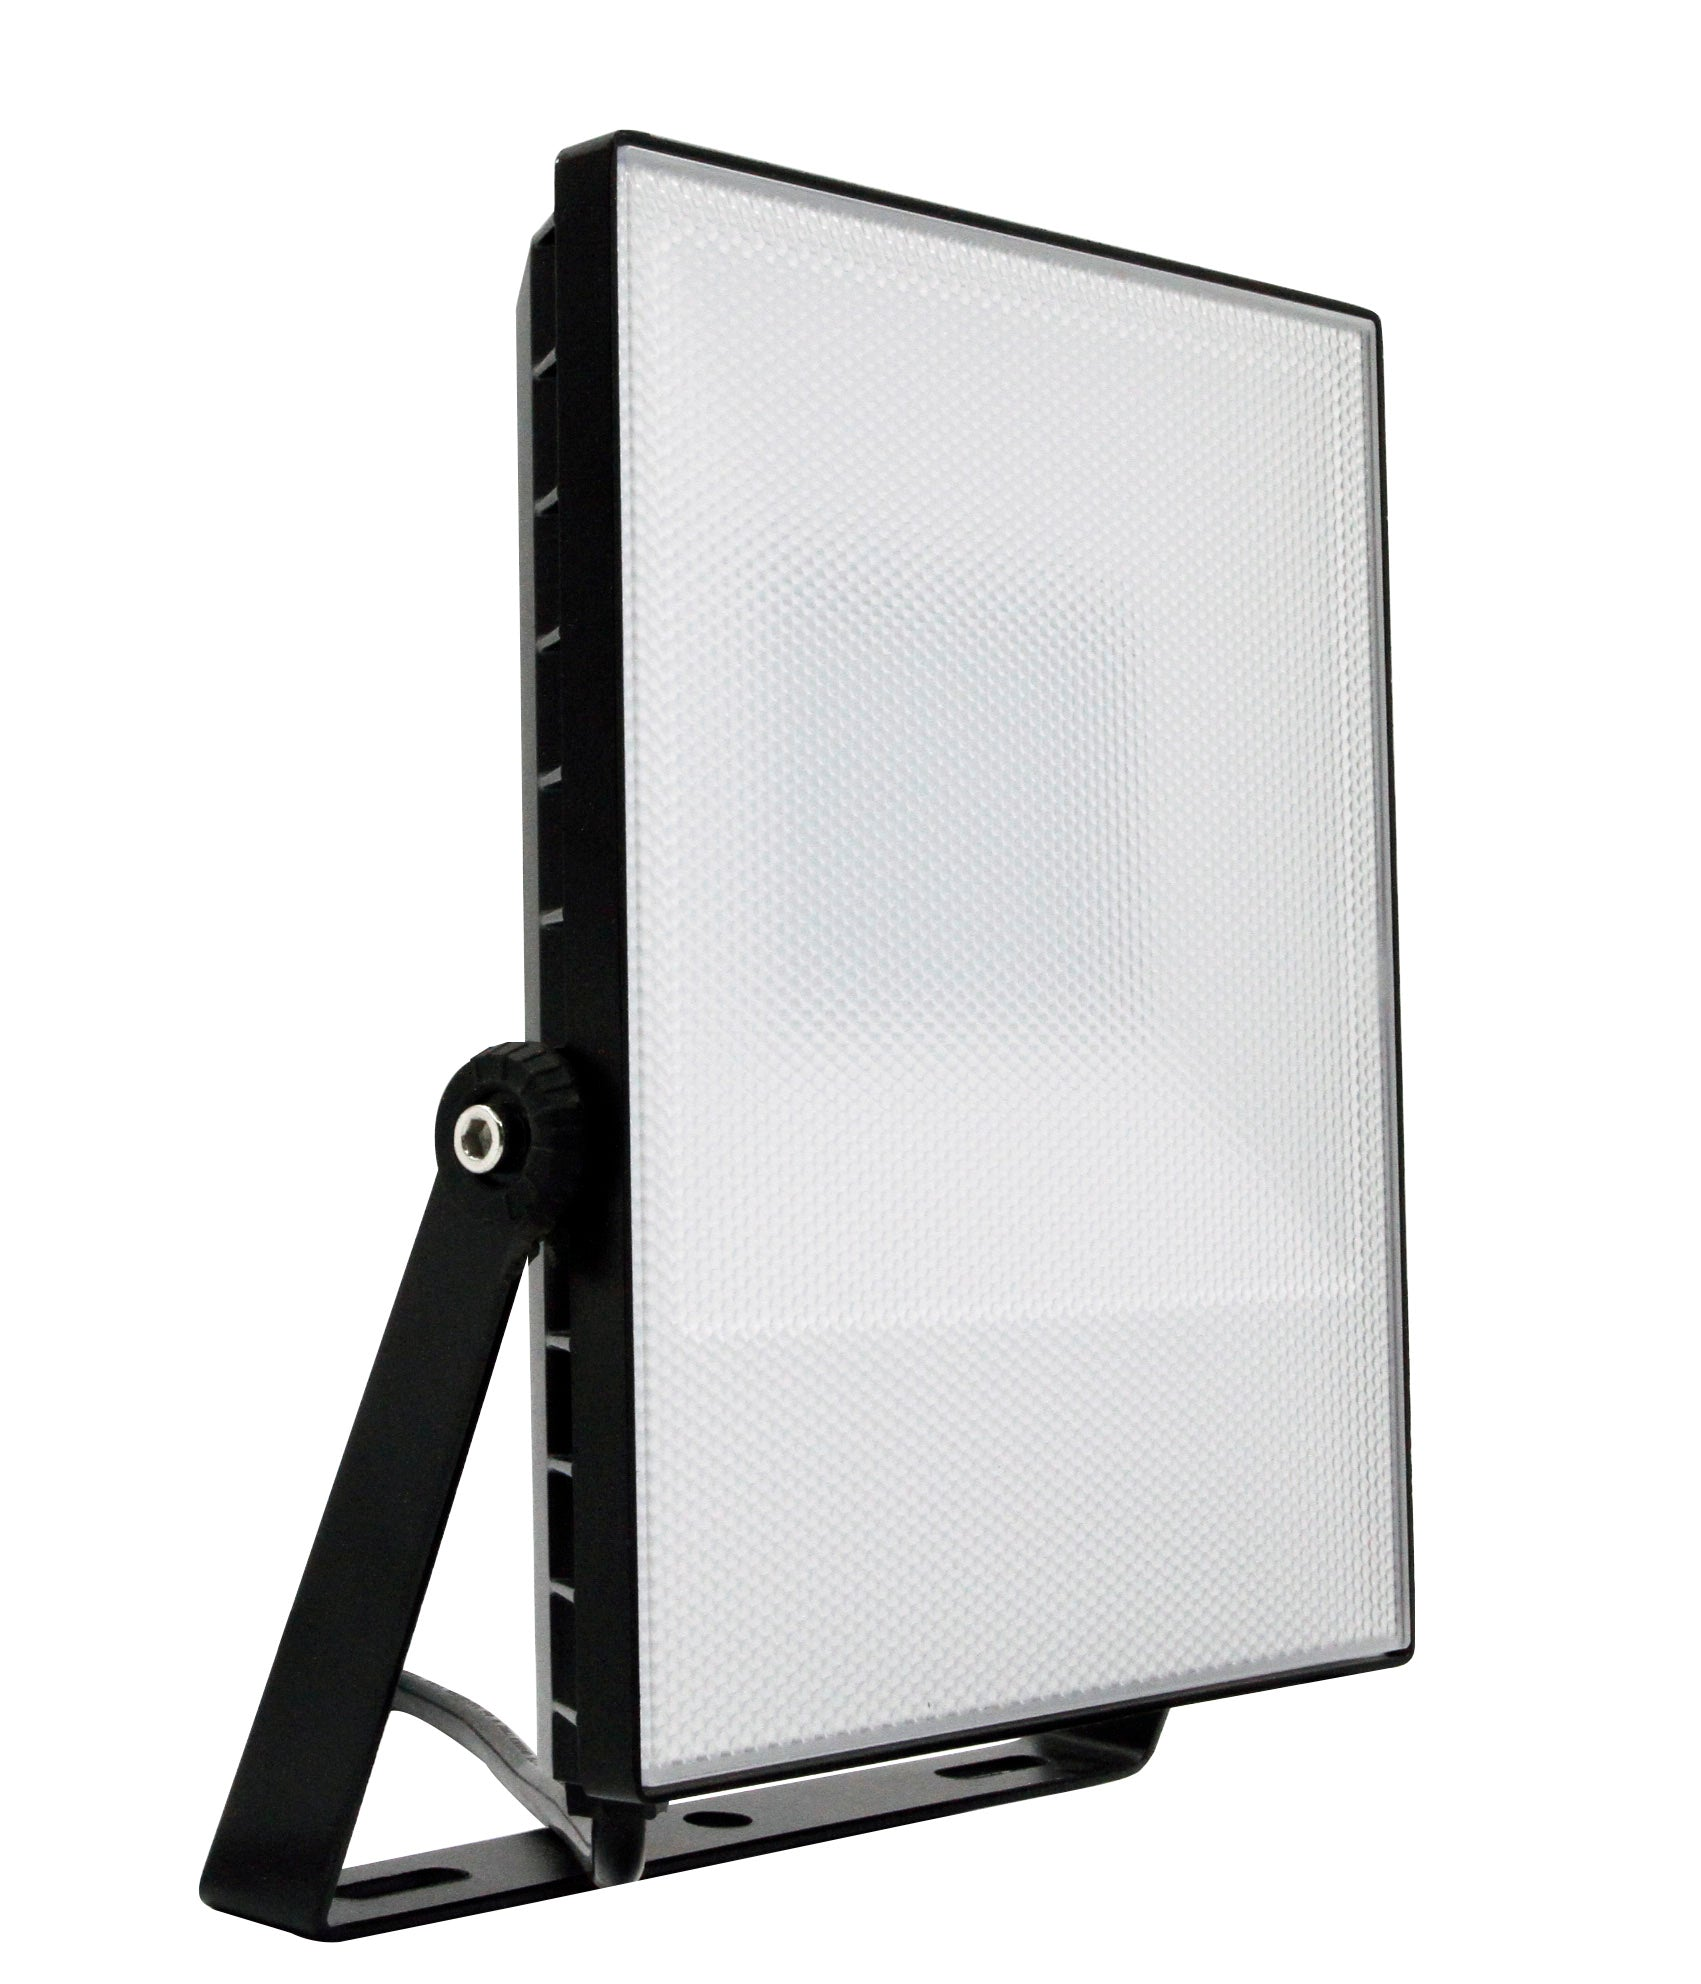 LED Pad Flood Light 50W, 120-277V, 4500LM, 4000K, Cool White - Trunnion - Consavvy